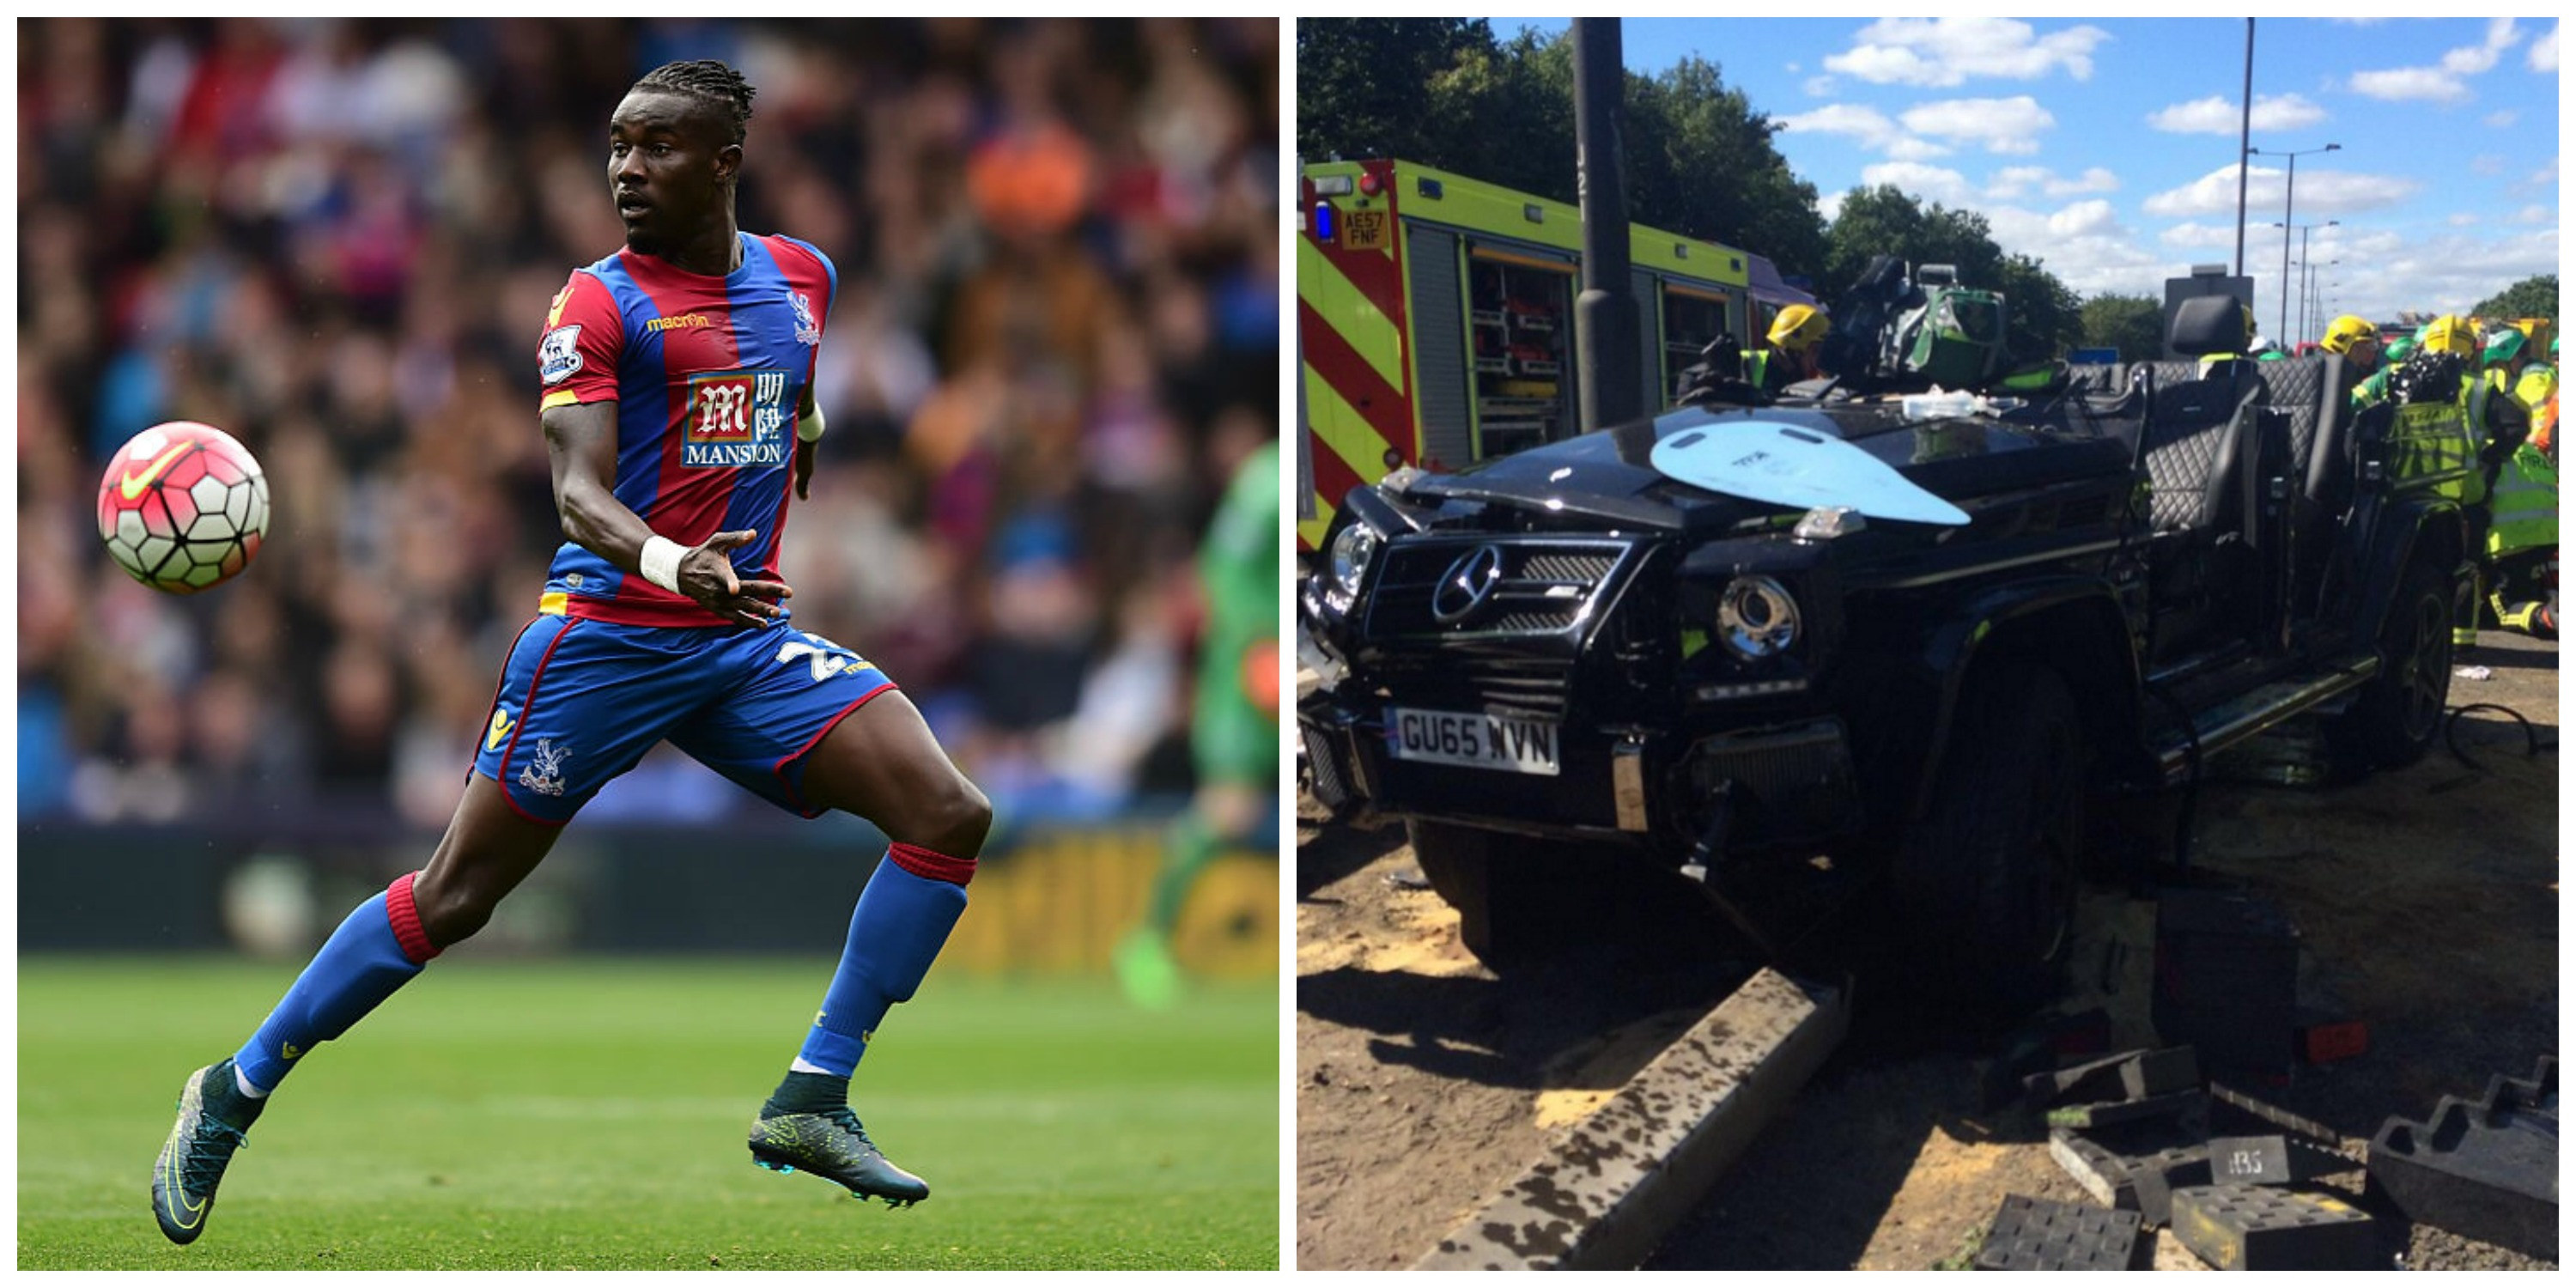 Palace defender Souare fears for career after horror crash